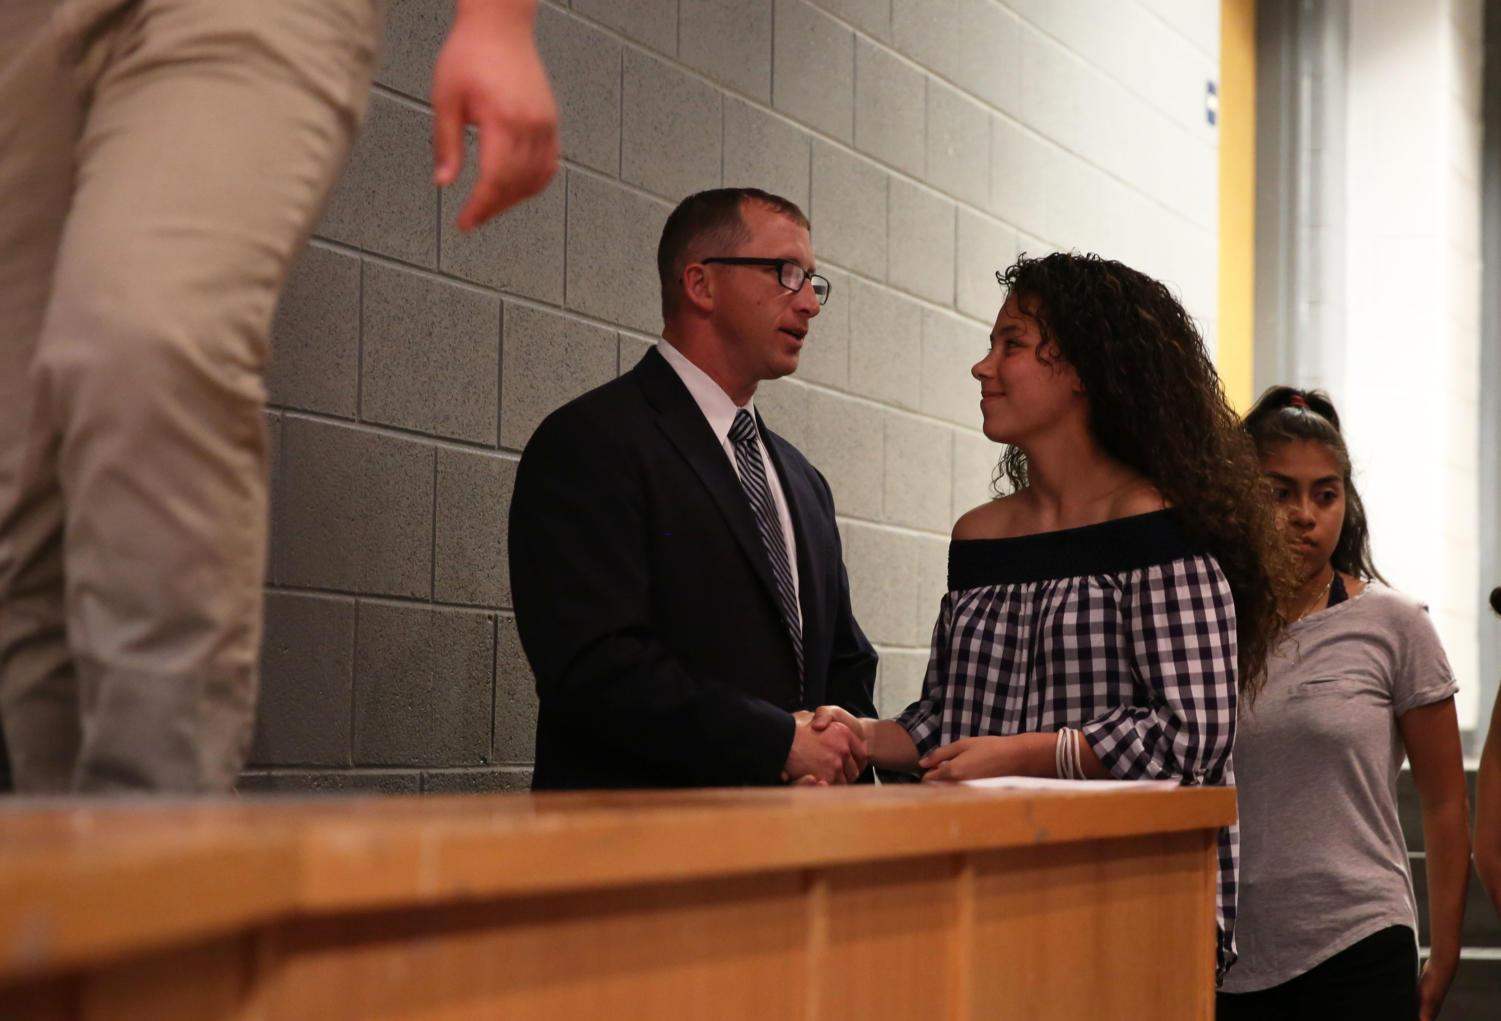 Sophomore+Francheska+Fontanez-Gonzalez+shakes+hands+with+assistant+principal+Eric+Miller+prior+to+heading+on+the+stage+to+receive+her+award.+